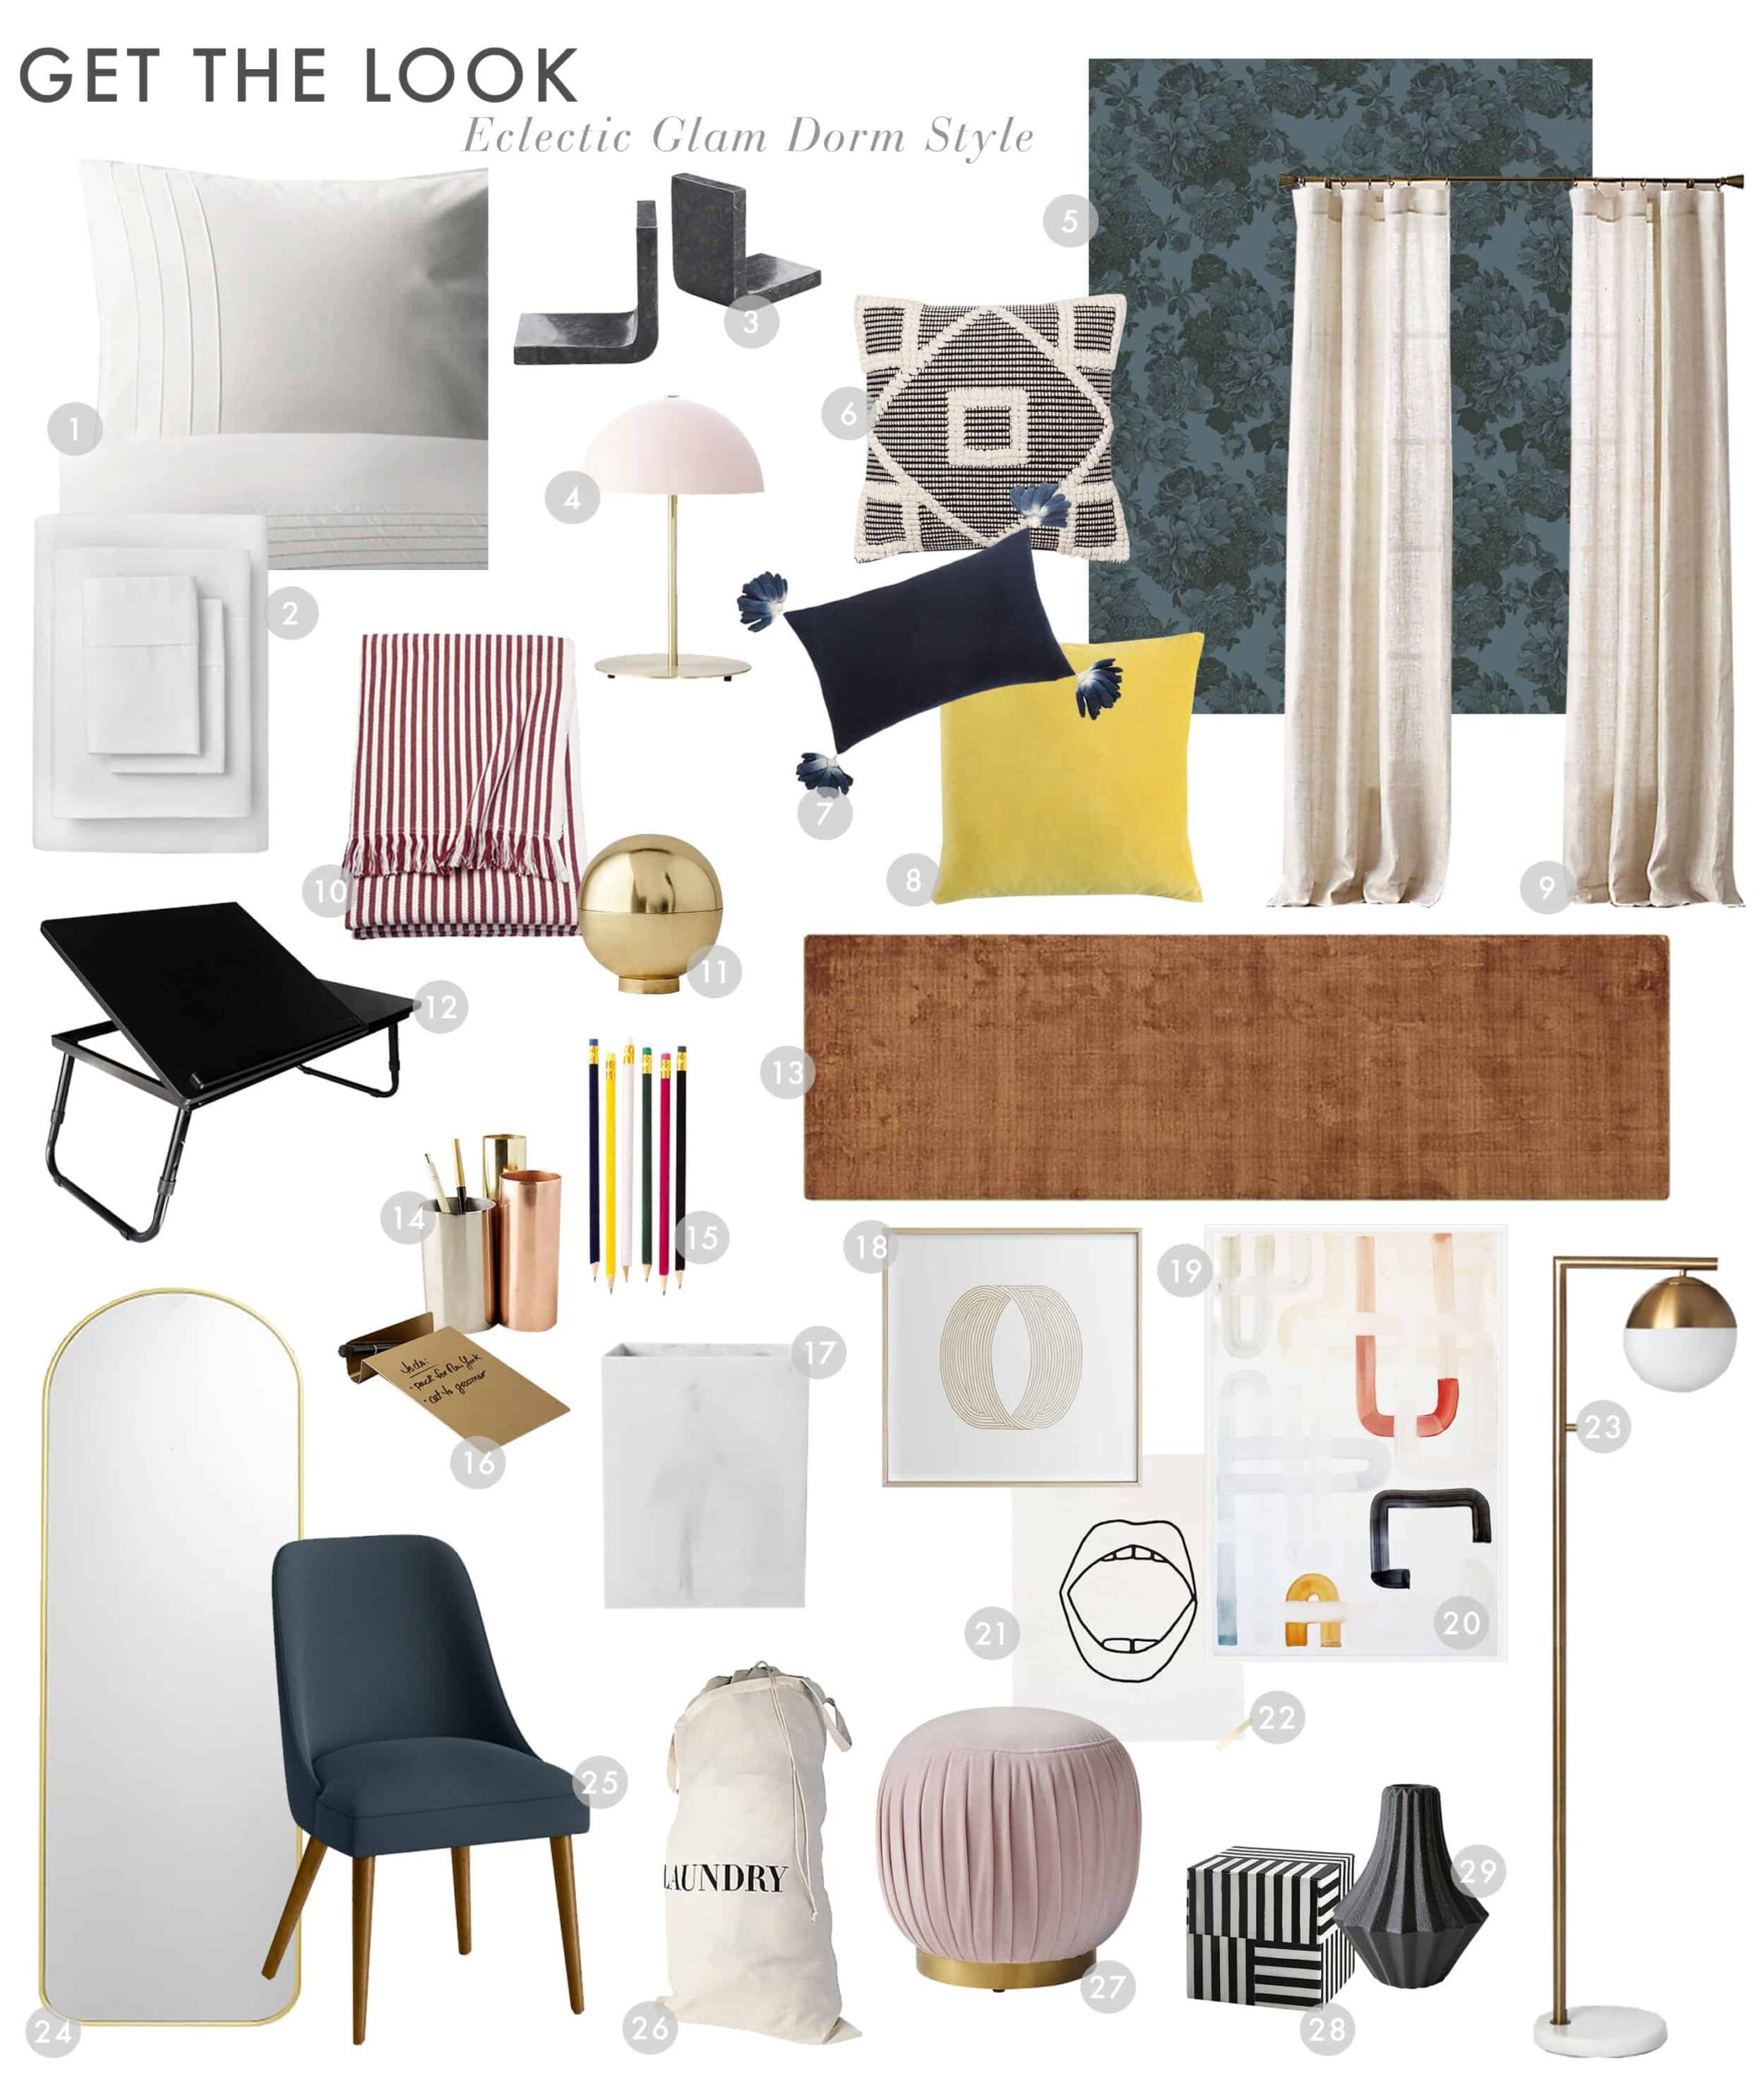 Dorm Room Eclectic Glam1